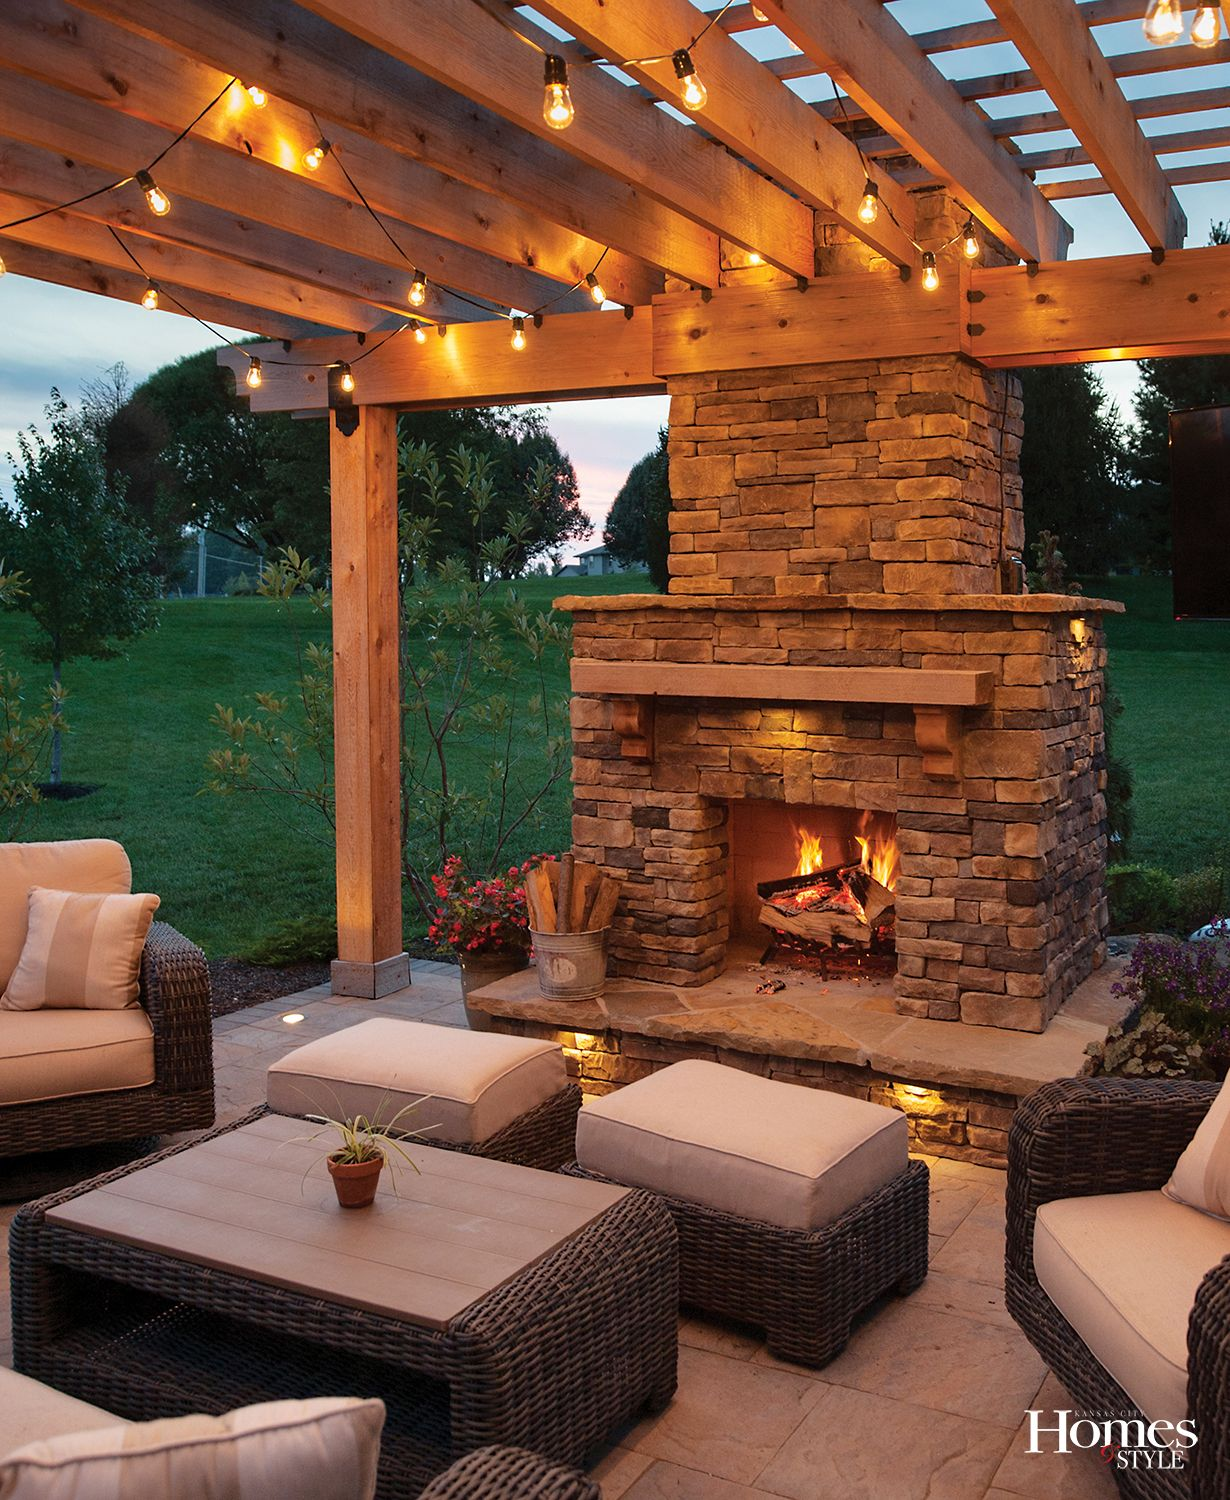 Backyard Fireplace Designs After They Saw A Spectacular Outdoor Fire Place At A